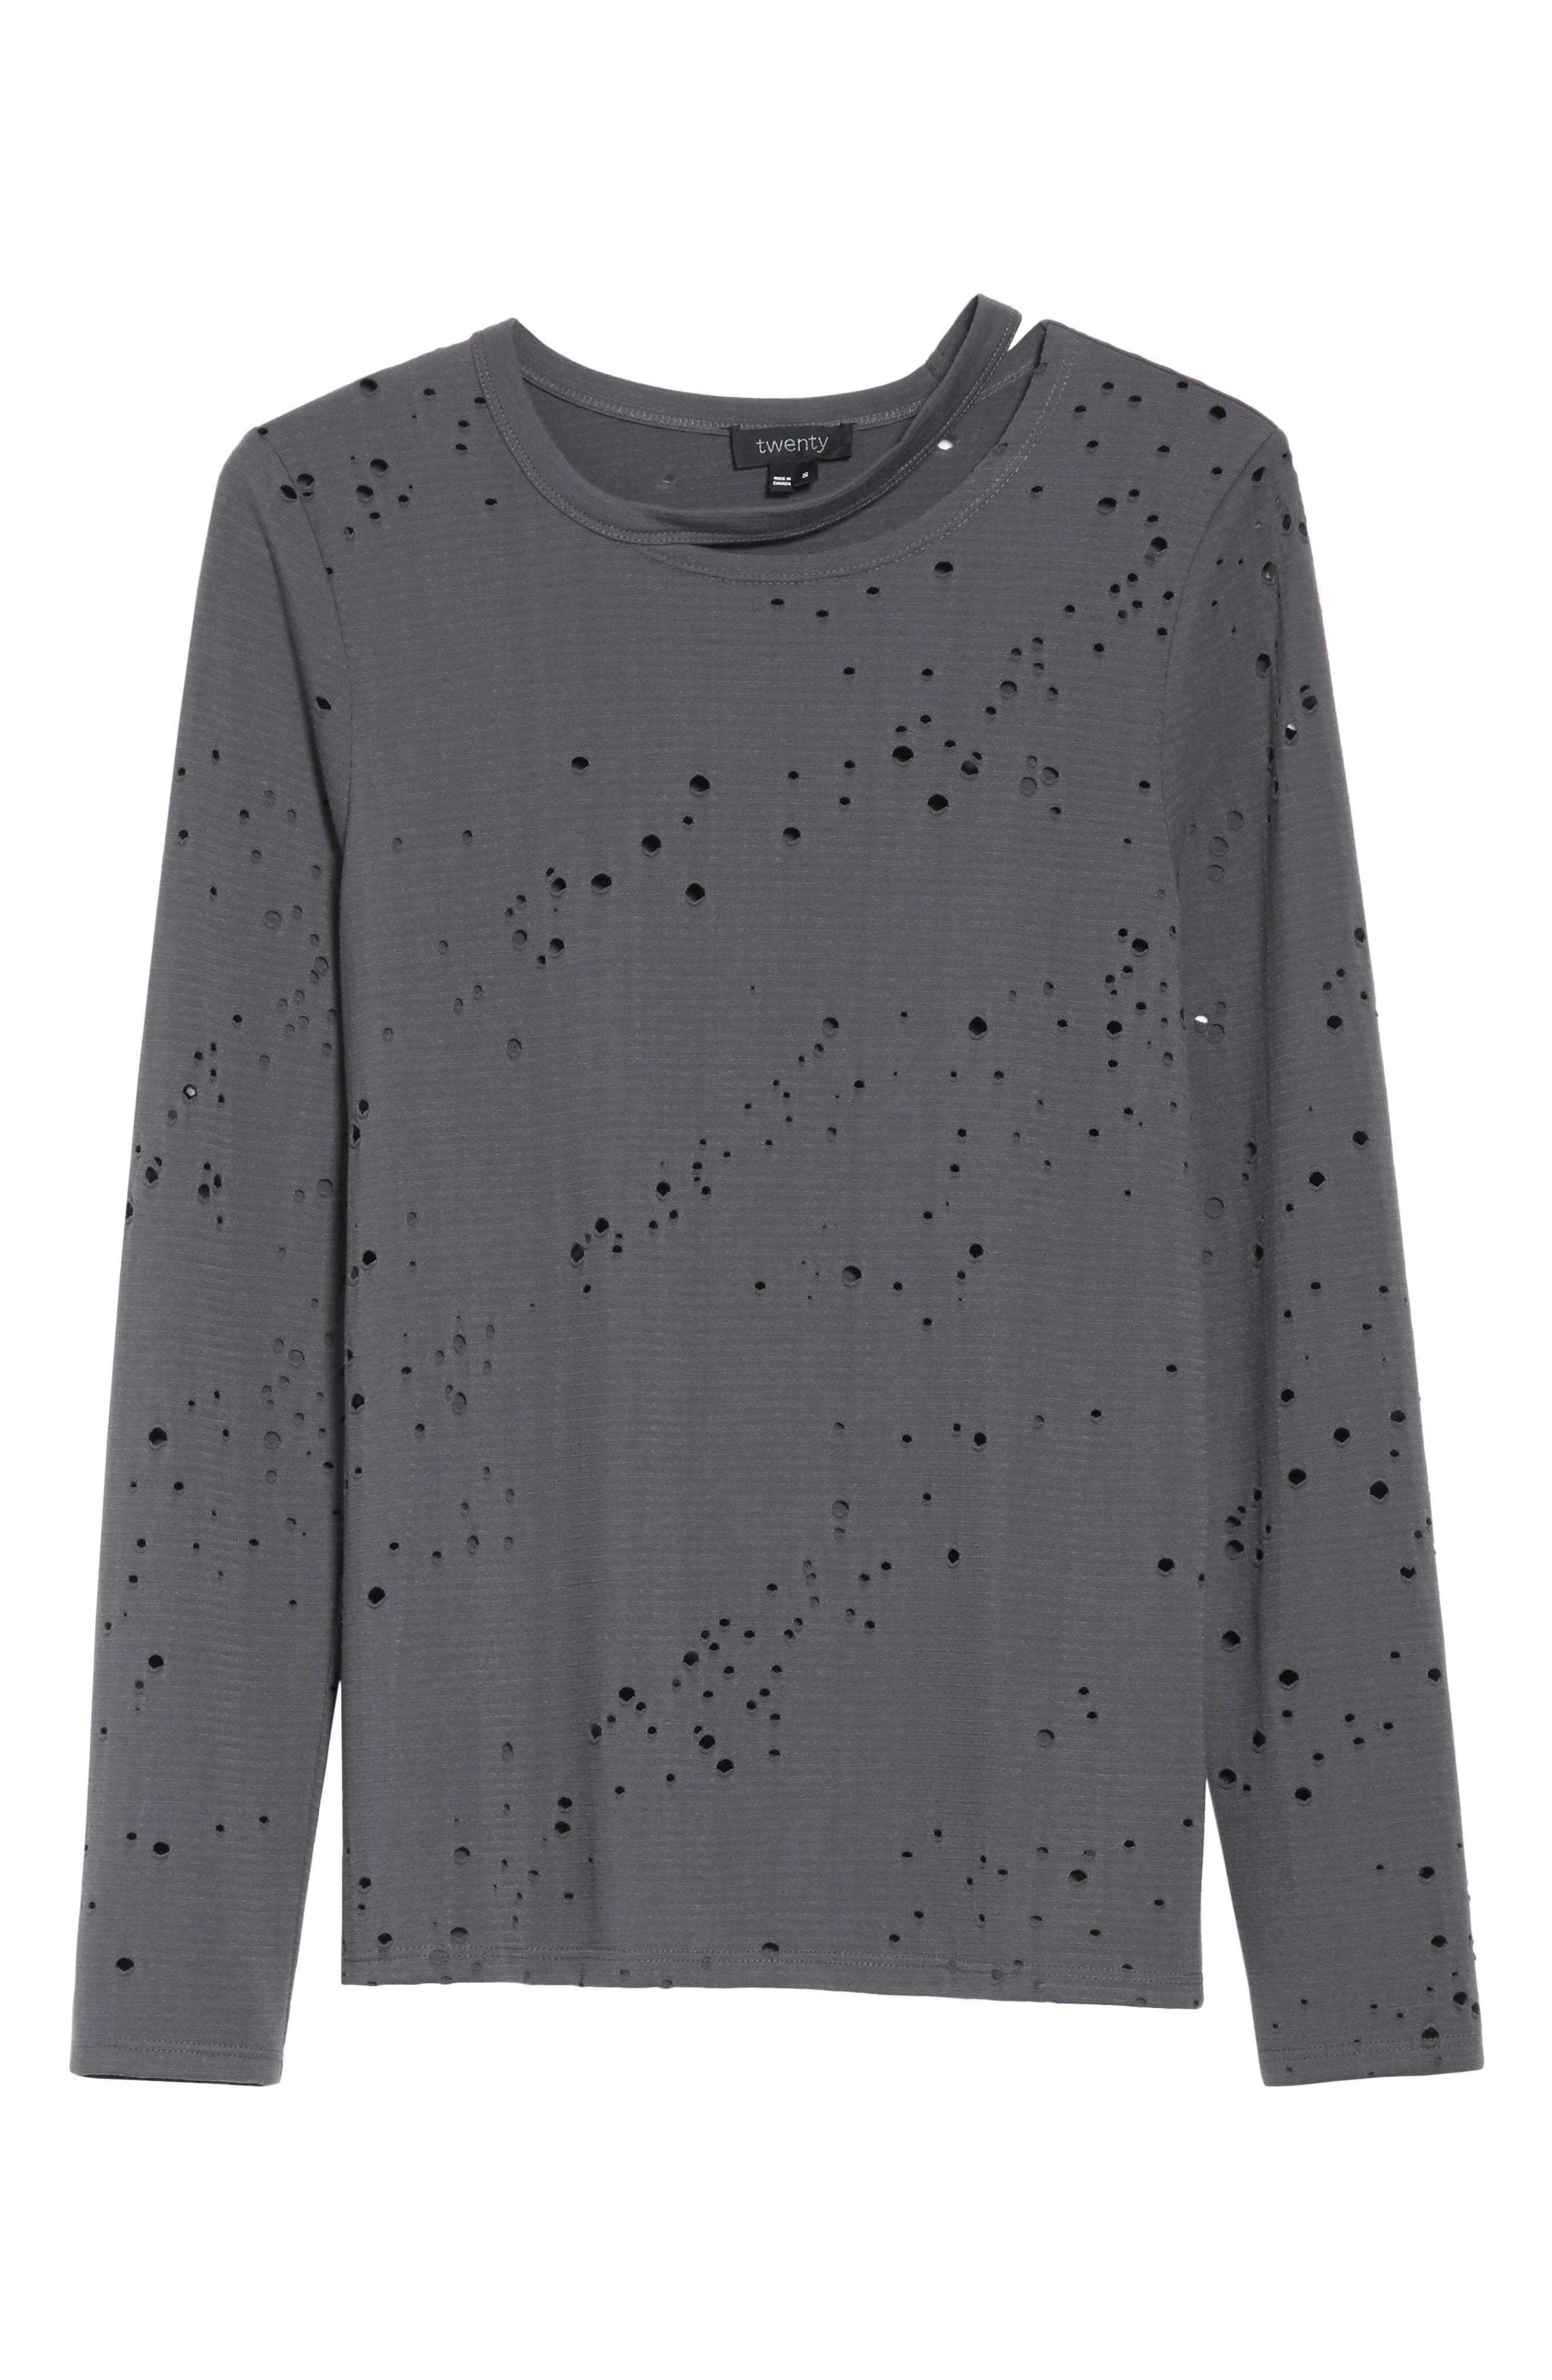 Waverly Perforated Tee,                             Alternate thumbnail 6, color,                             022